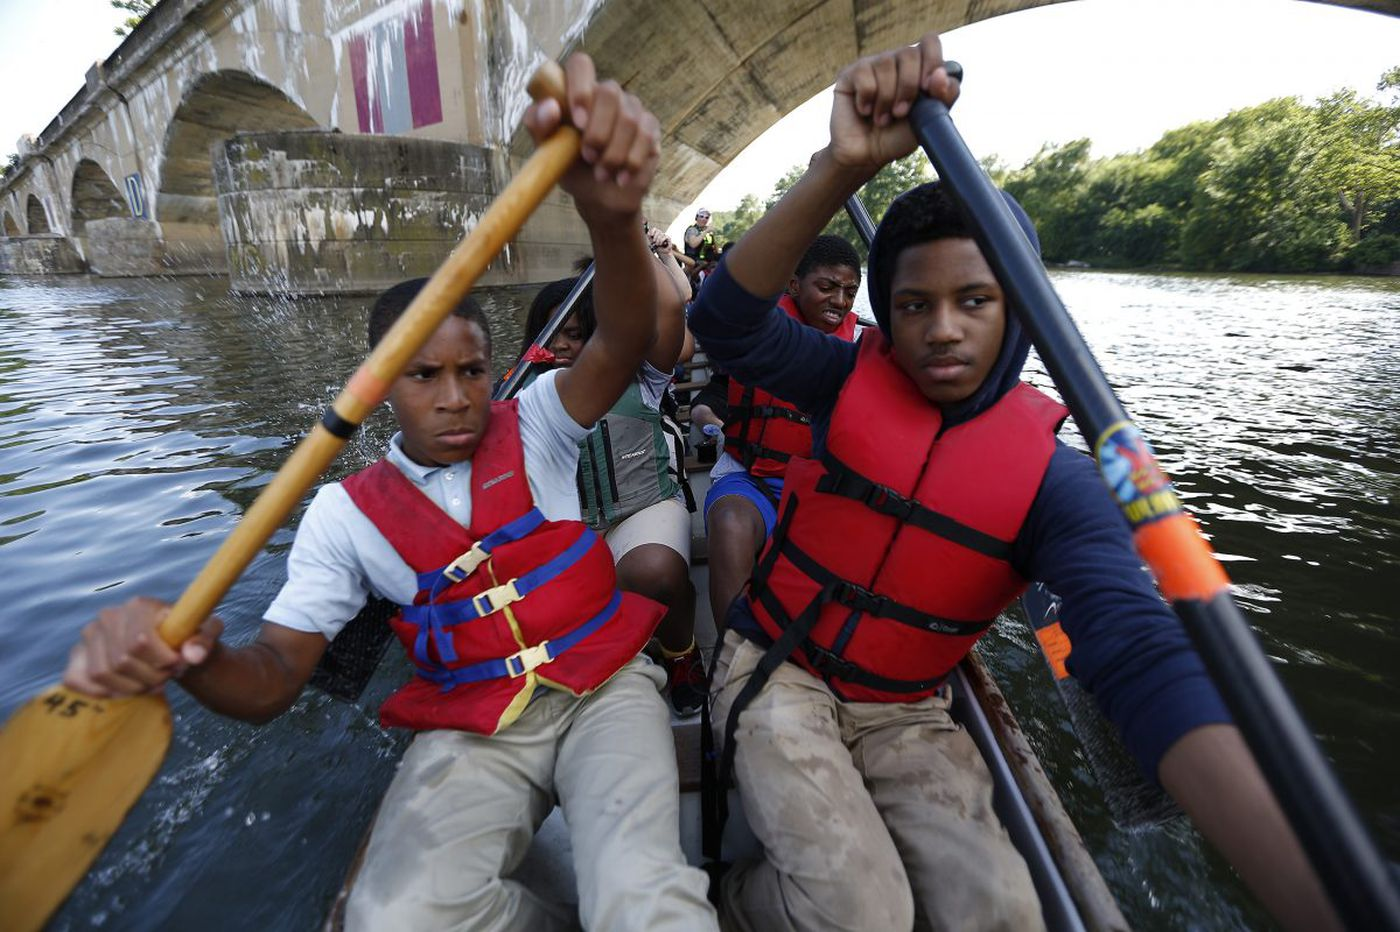 On the Schuylkill, Philly students learn about dragon boat racing - and life